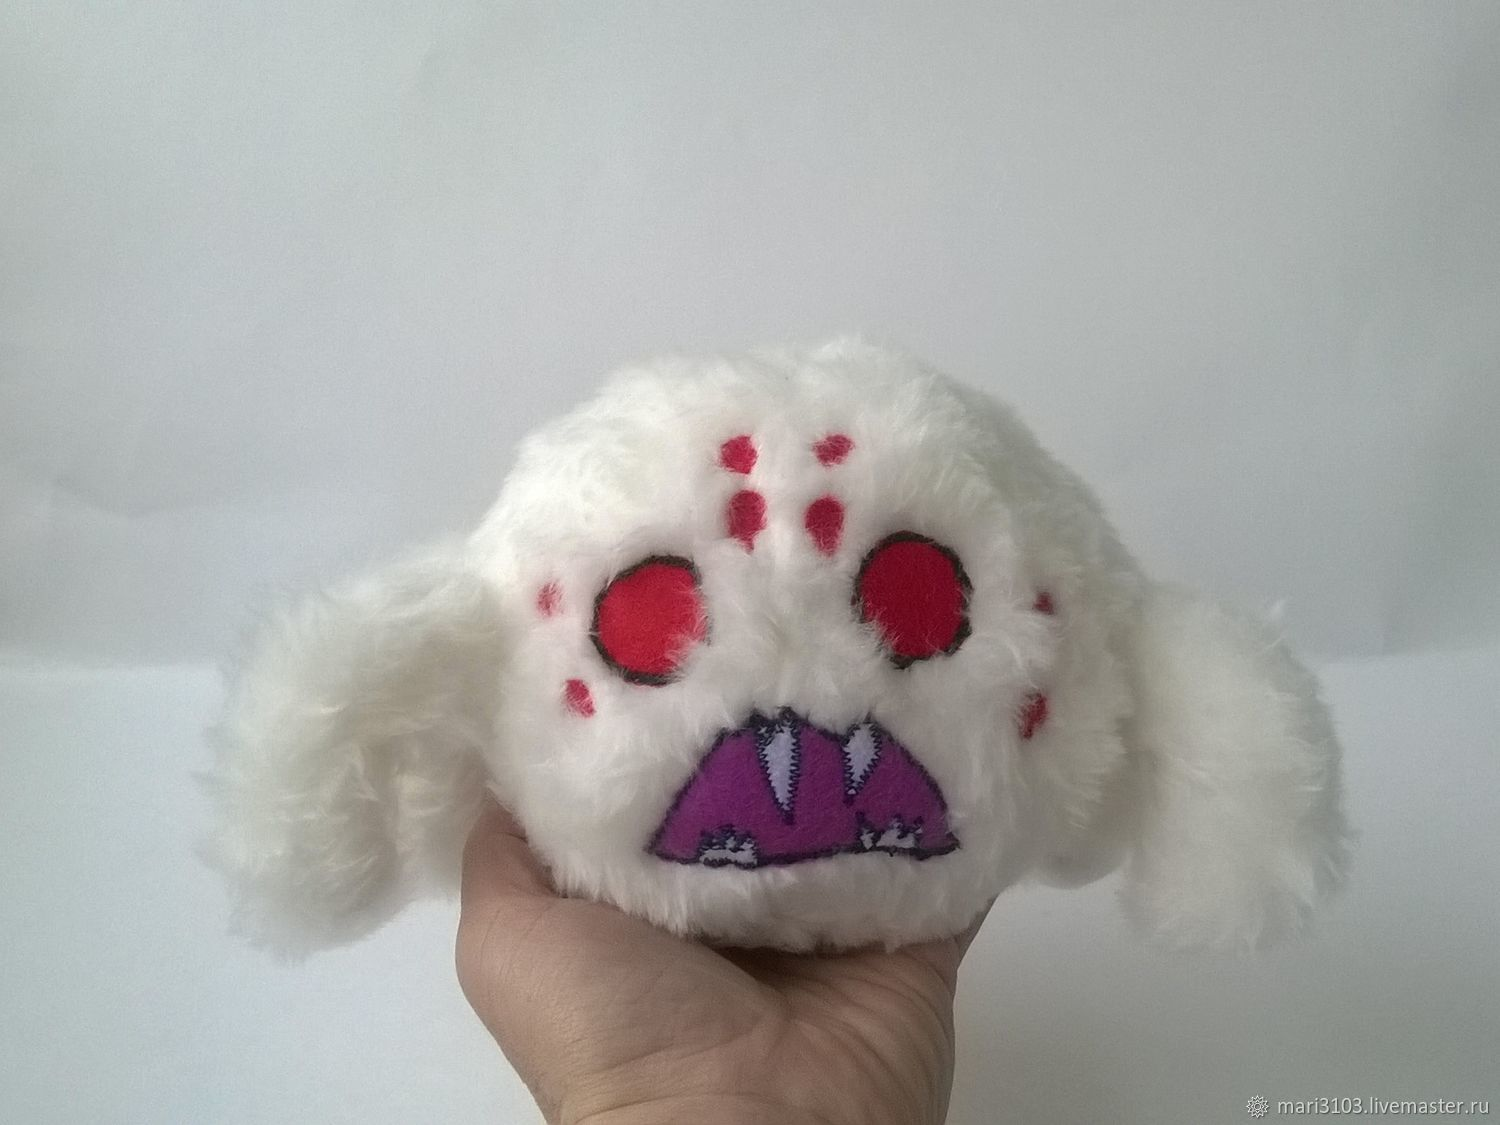 deep Spider from the game Don t Starve, Stuffed Toys, Vyazma,  Фото №1